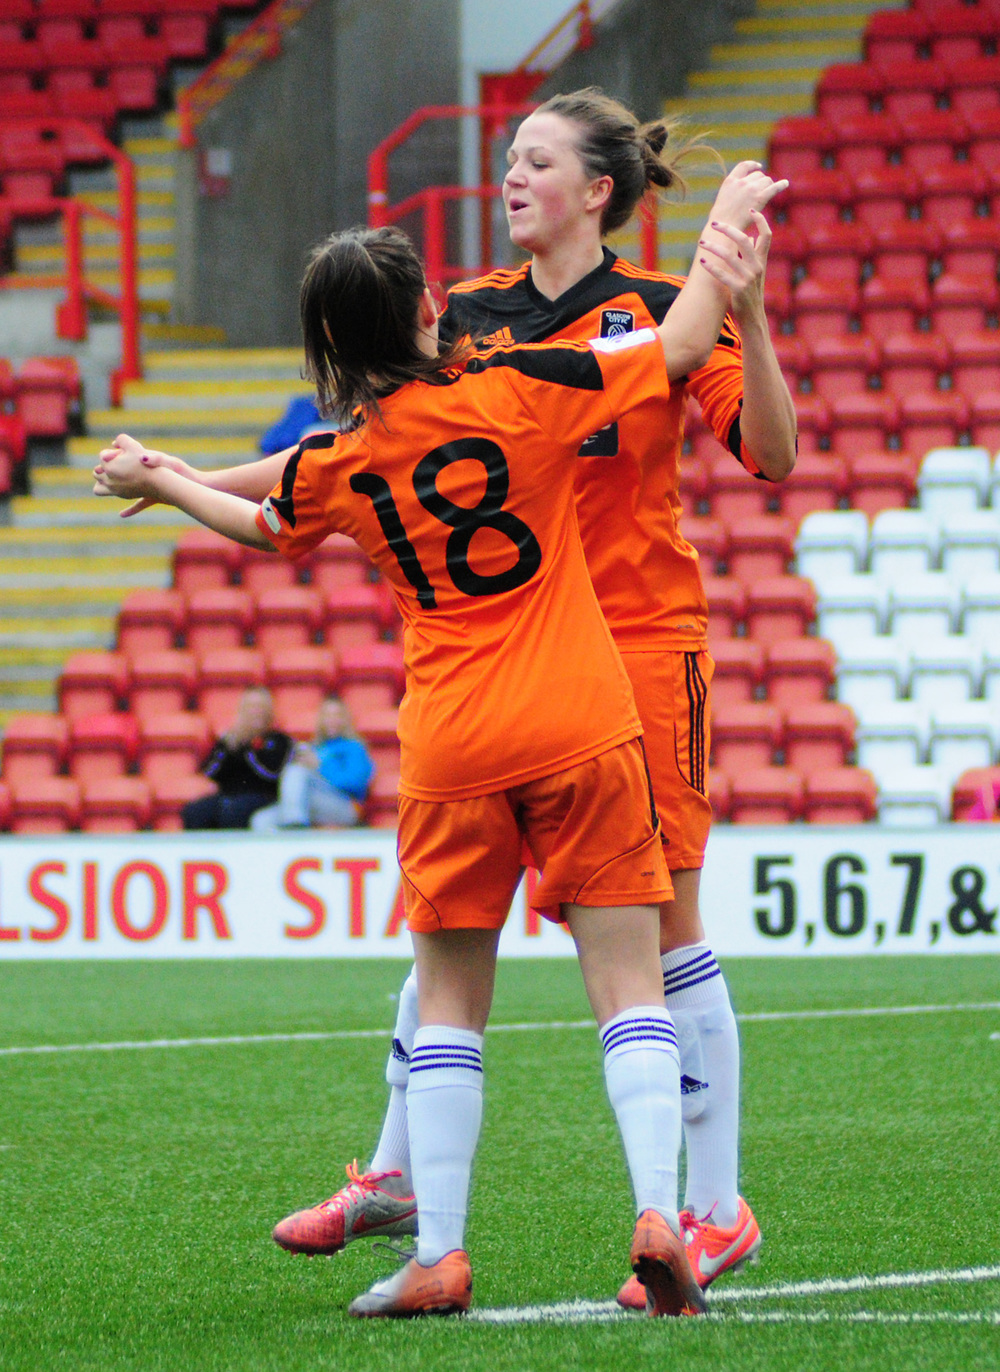 Sue Lappin celebrates. Image by Graeme Berry